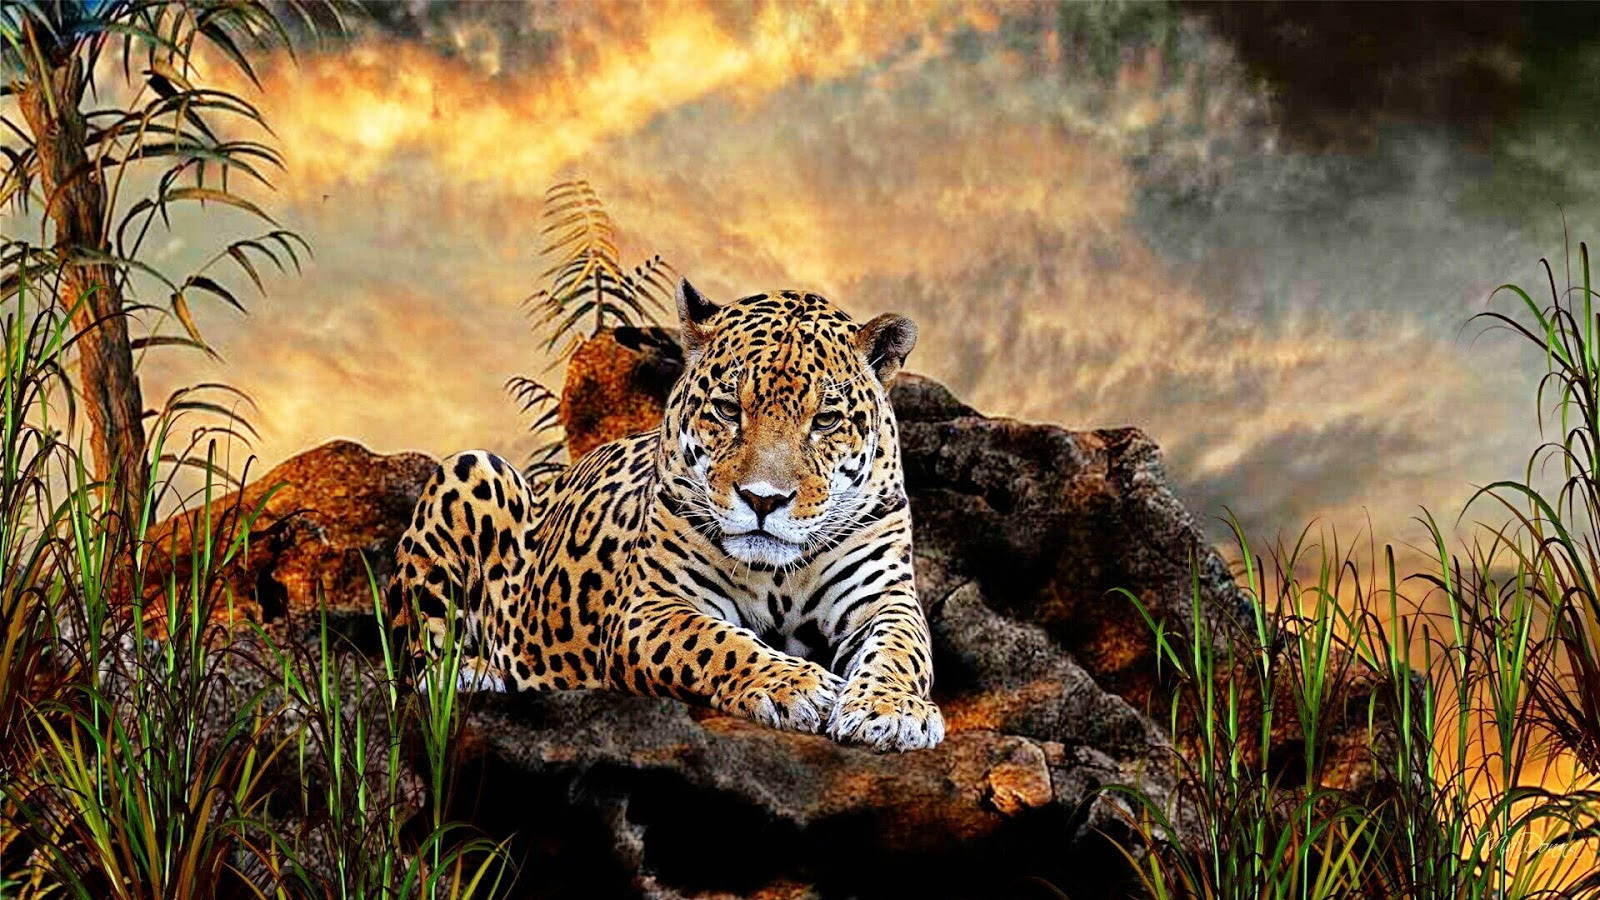 Animals Wallpaper 3d Hd 2 0 Apk Download: Pelestarian Hewan Dan Tumbuhan